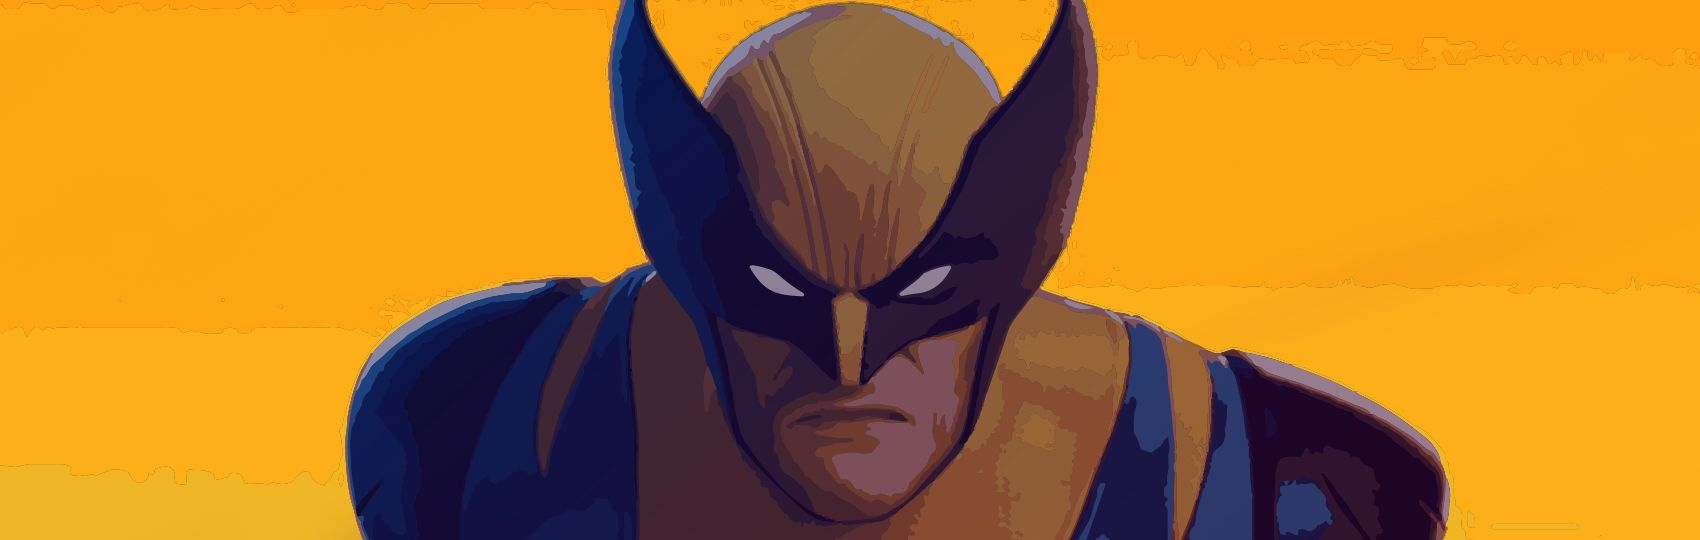 Wolverine in Fortnite! Are you ready for new challenges?